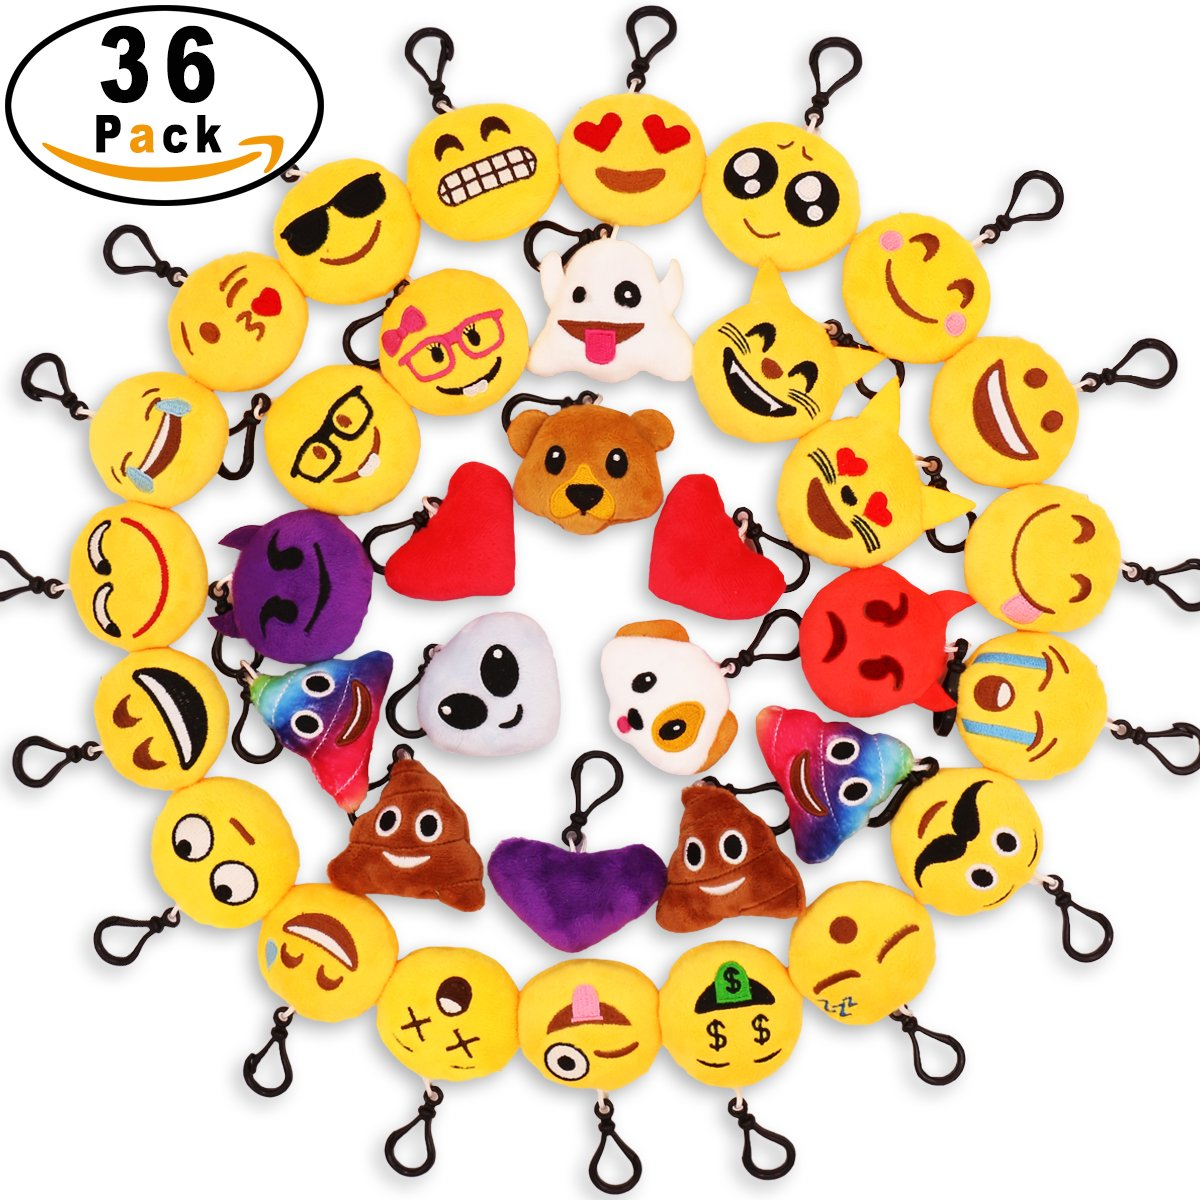 MelonBoat 36 Pack 2'' Emoji Plush Keychain Mini Pillows Backpack Clips, Emoticon Poop Emoji Birthday Party Favors Supplies, Goodie Bag Stuffers, Novelty Gifts Toys Prizes for Kids